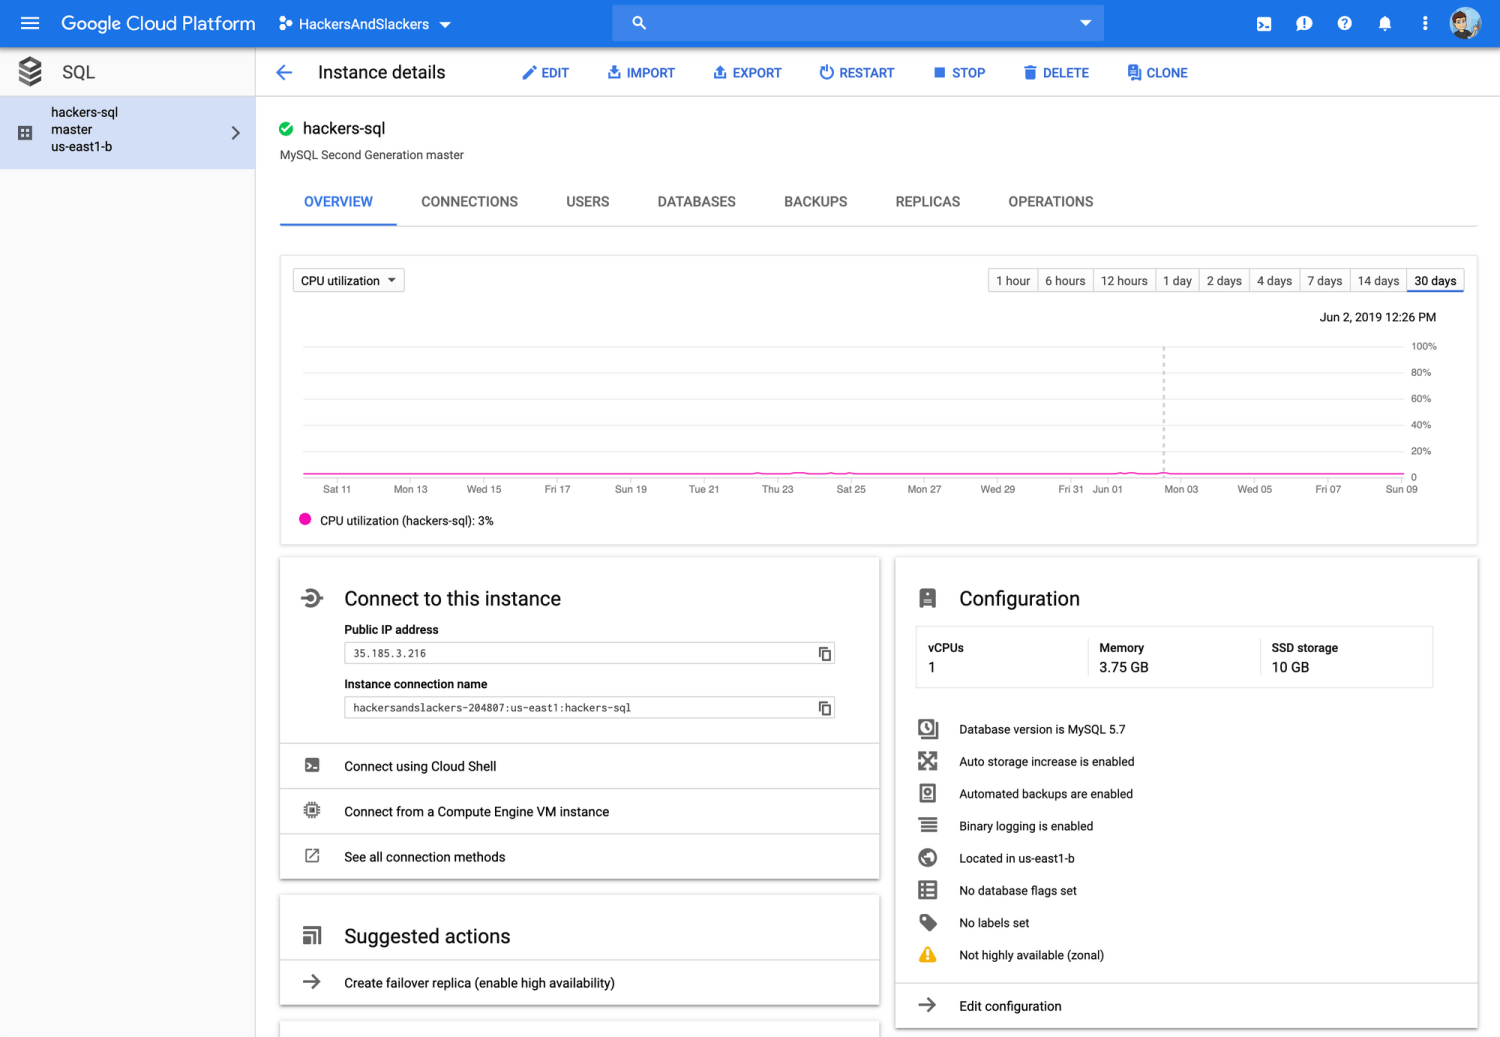 Dashboard for managing a Cloud SQL instance